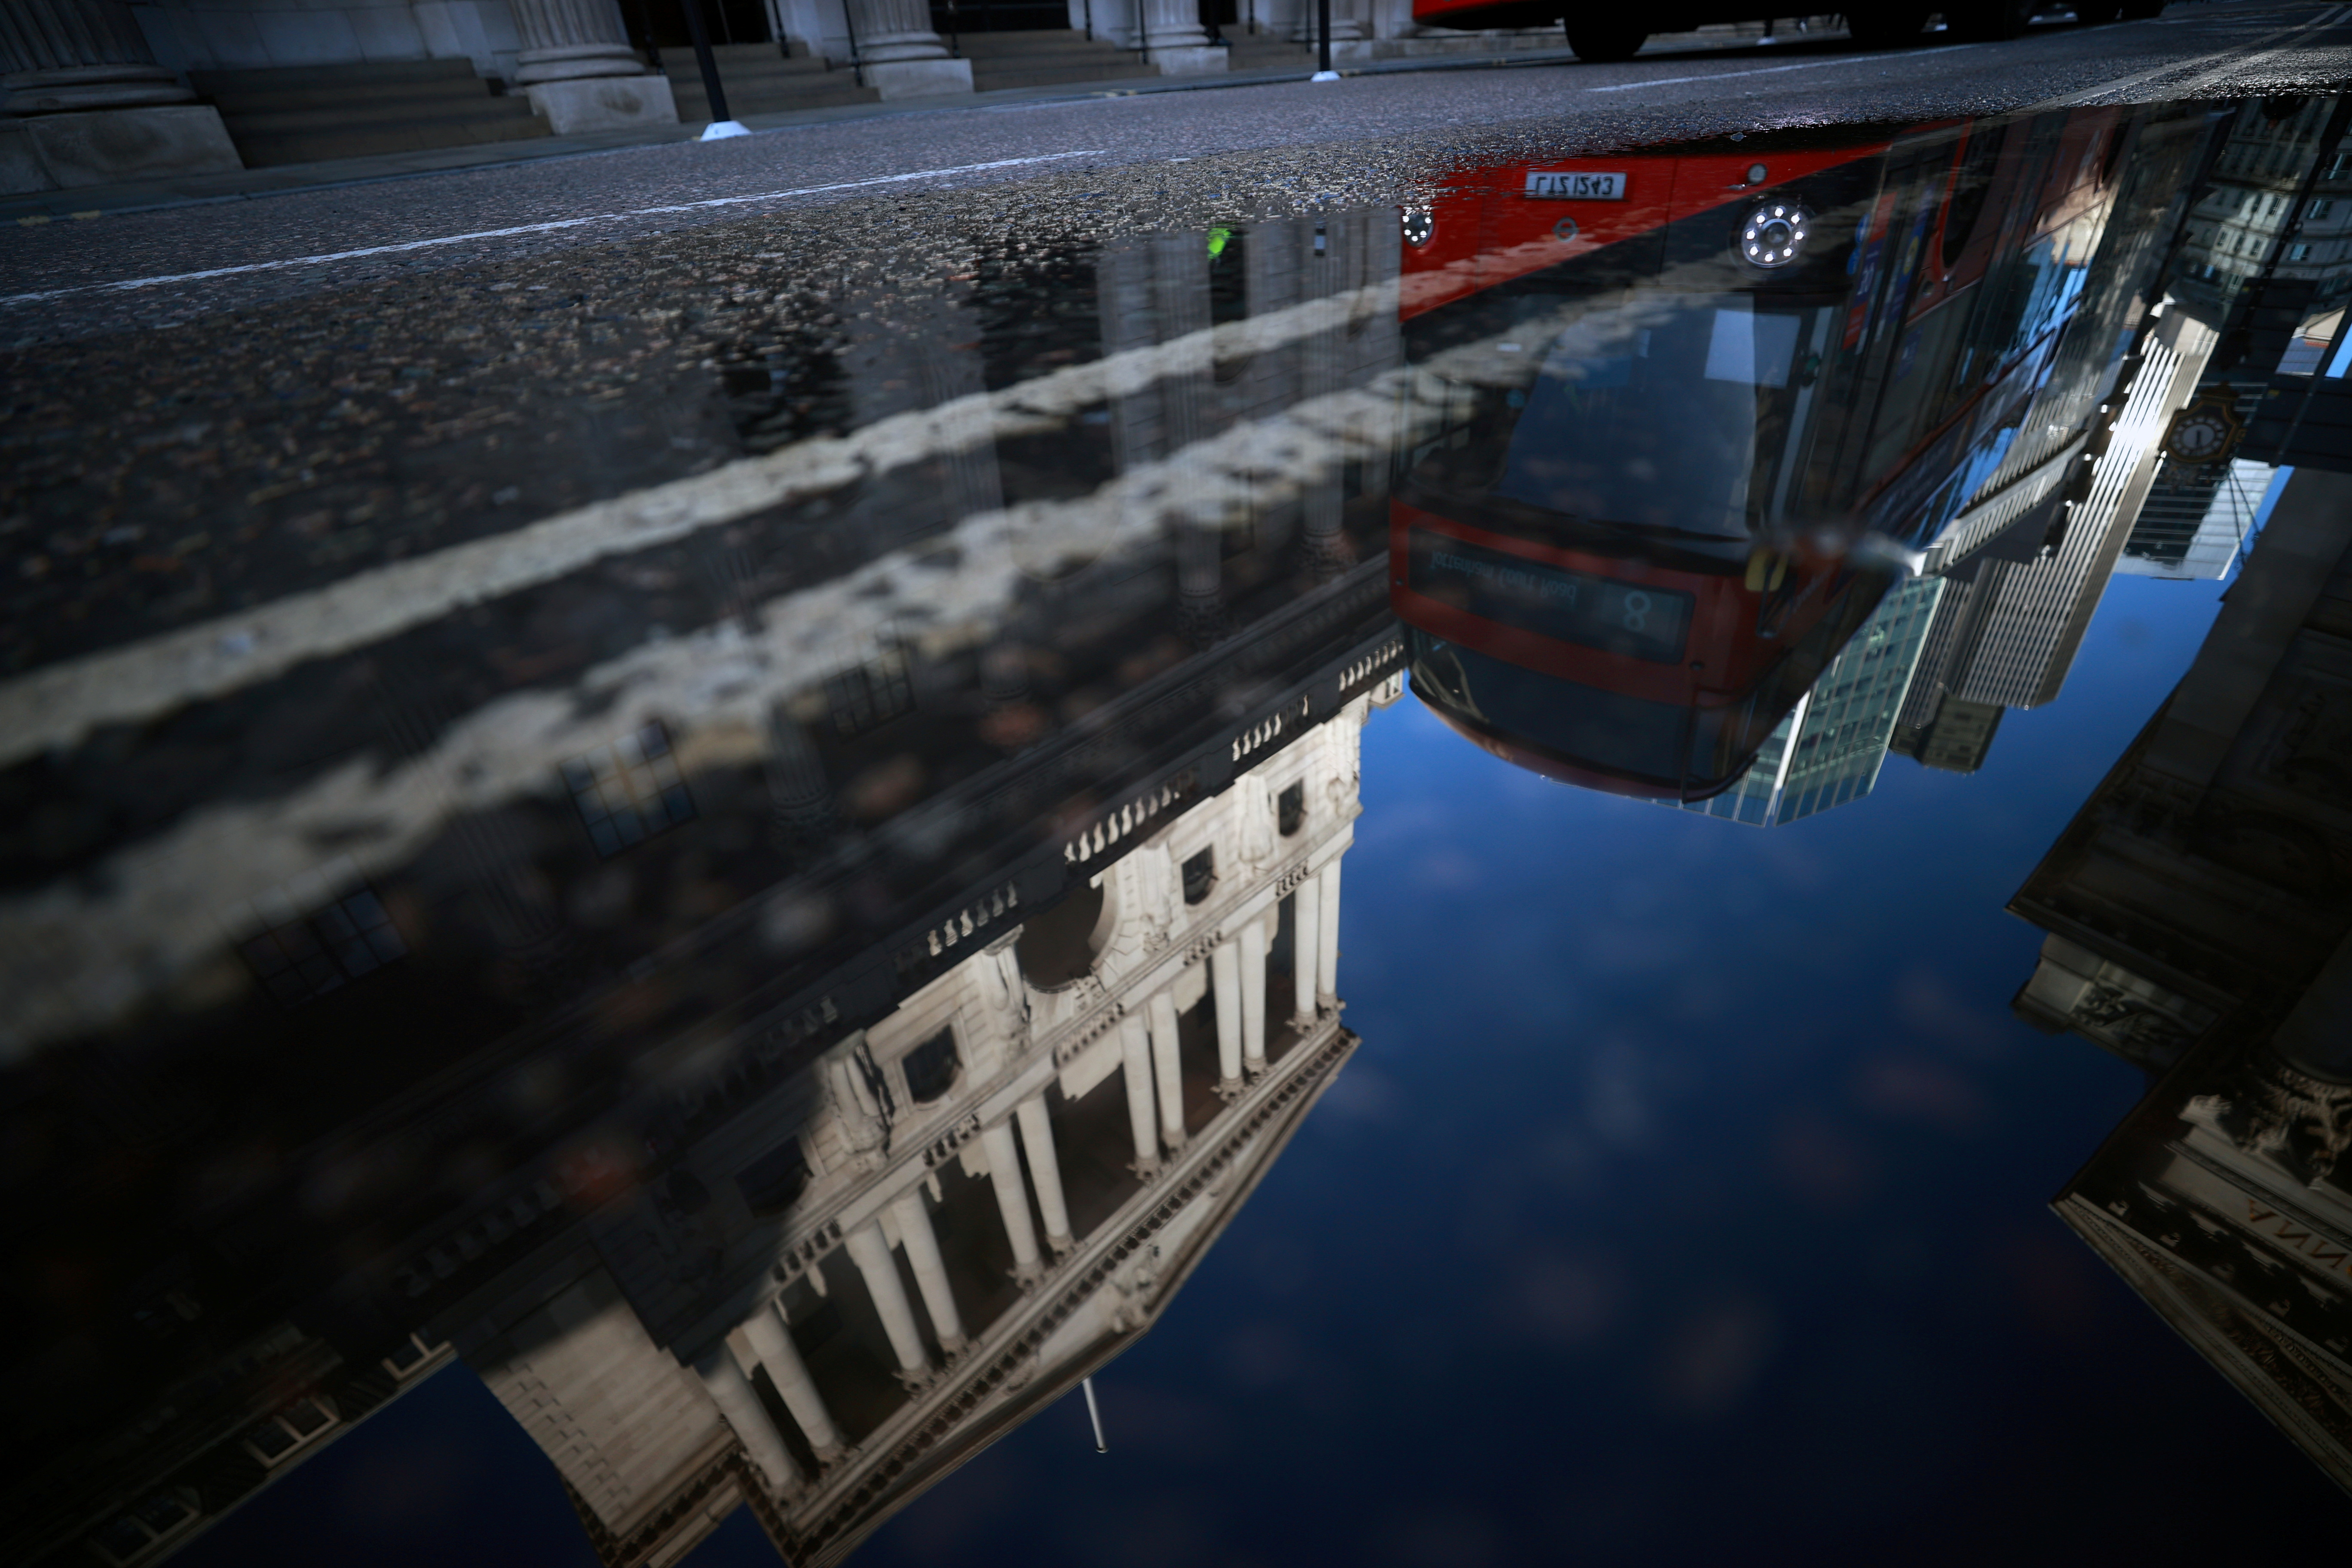 The Bank of England and the City of London financial district are reflected in a puddle, in London, Britain, December 17, 2020. REUTERS/Hannah McKay/File Photo